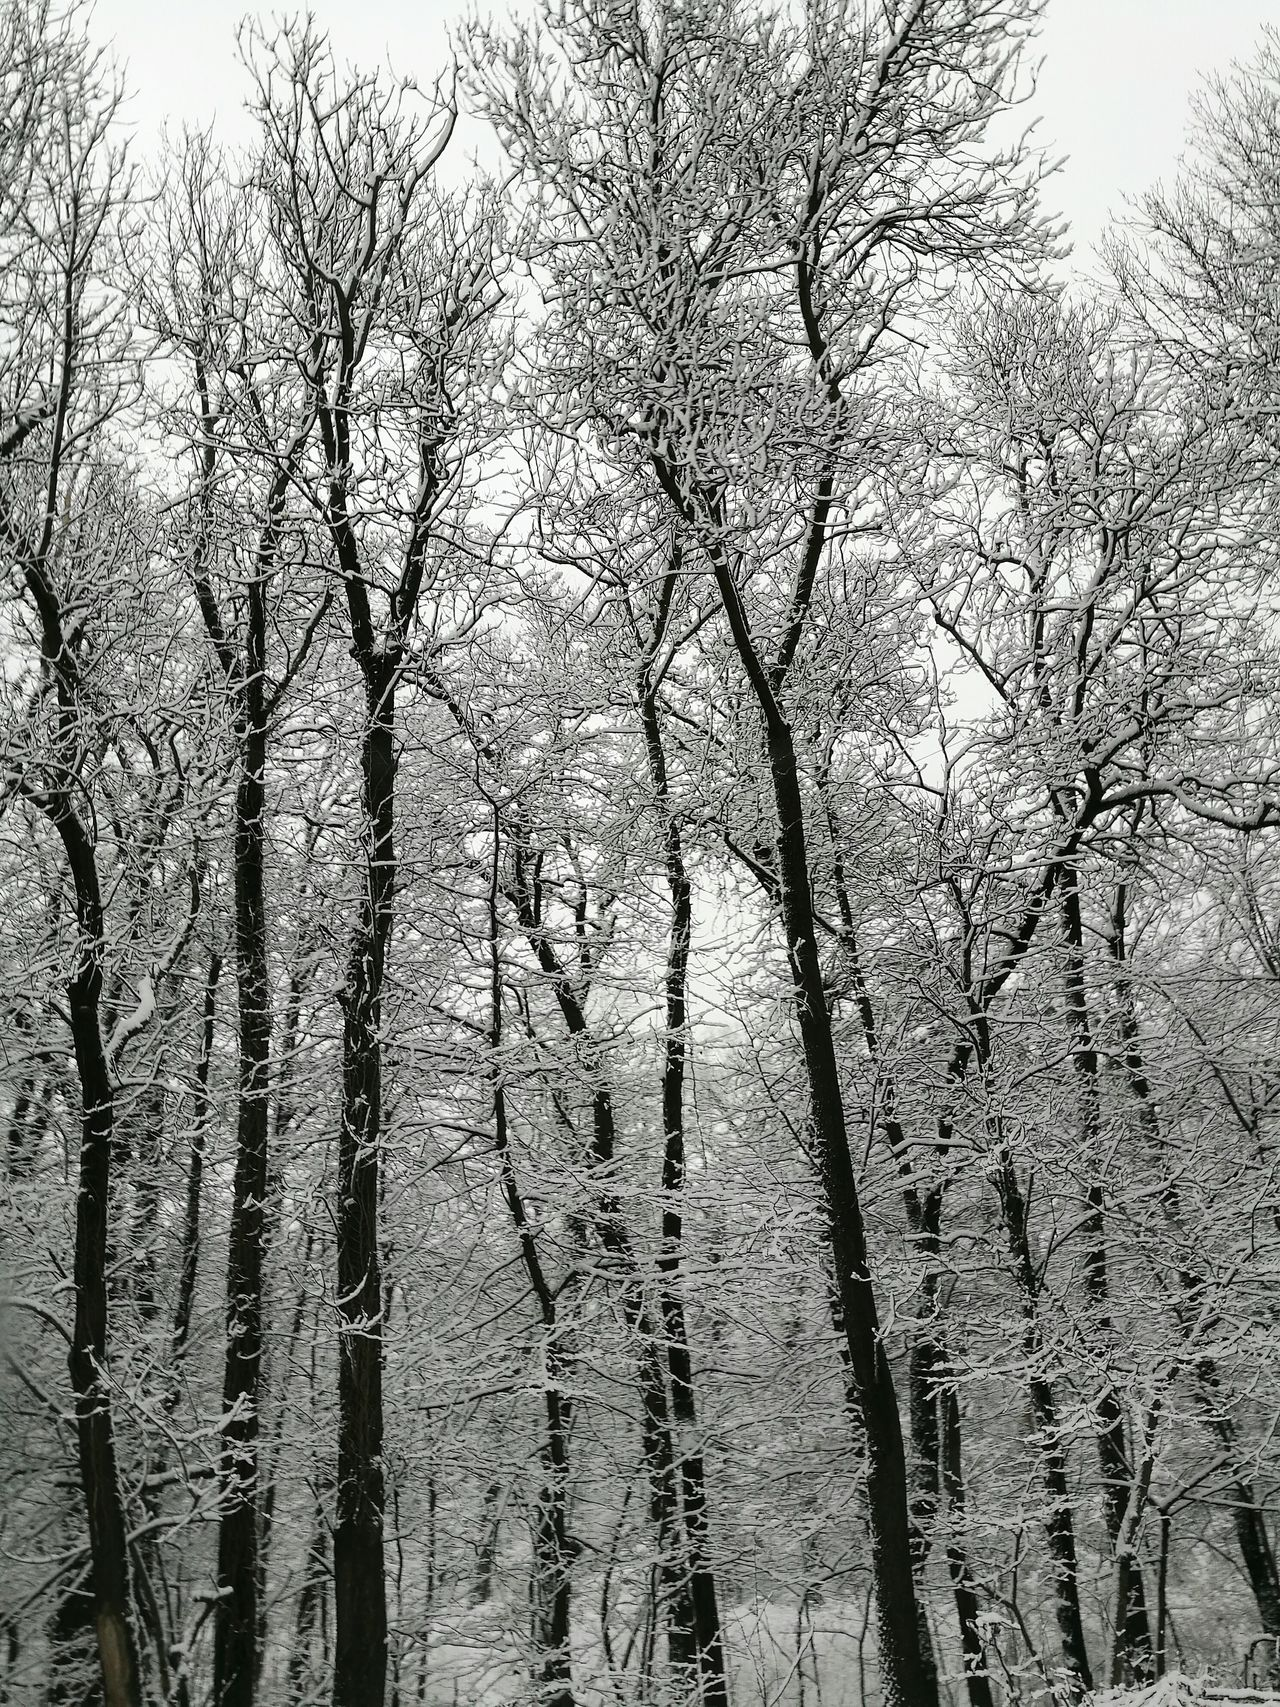 Tree Nature Sky No People Beauty In Nature Close-up Day Outdoors Low Angle View Growth Transportation Snow Snowy Trees